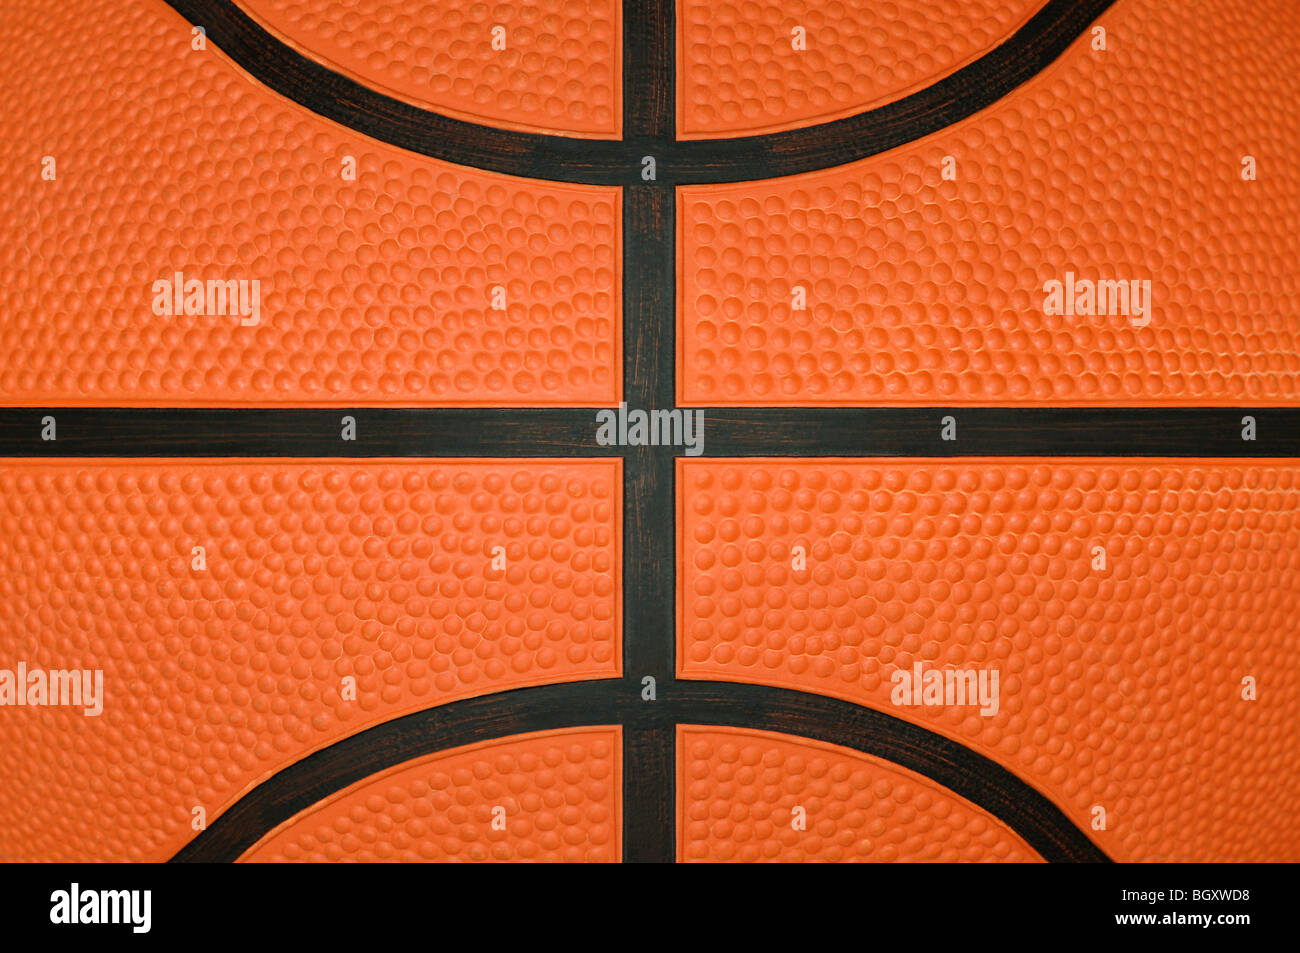 Basket-ball Close Up Photo Stock